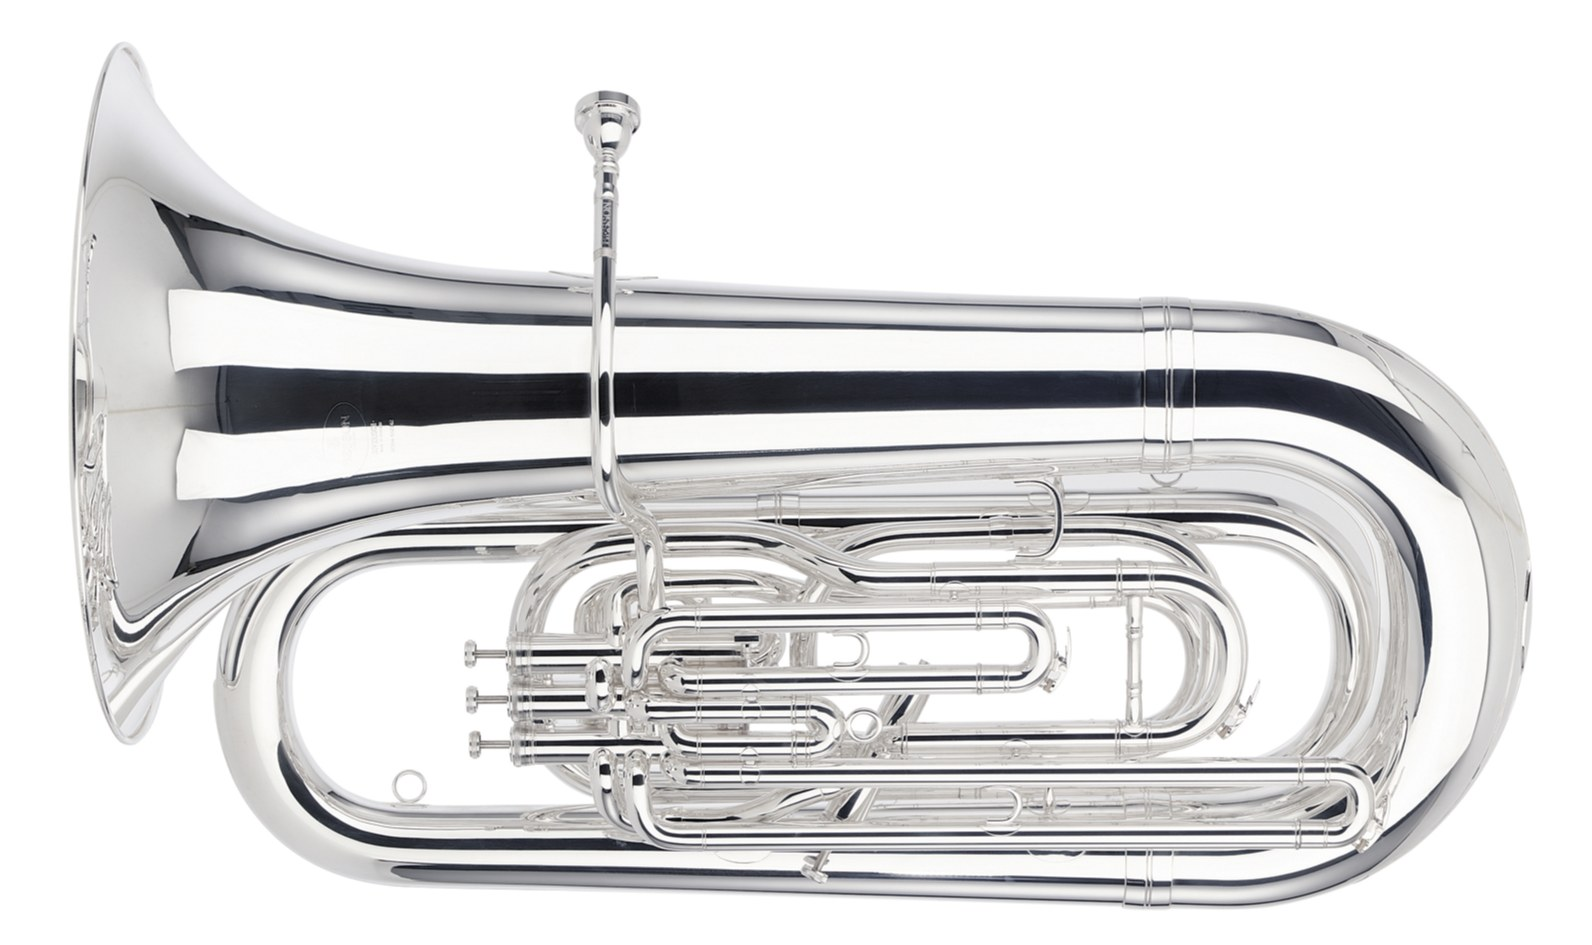 For BBb players the mighty 994 Tuba provides a tremendously sonorous bass  voice to any large ensemble, yet is lighter than previous models.